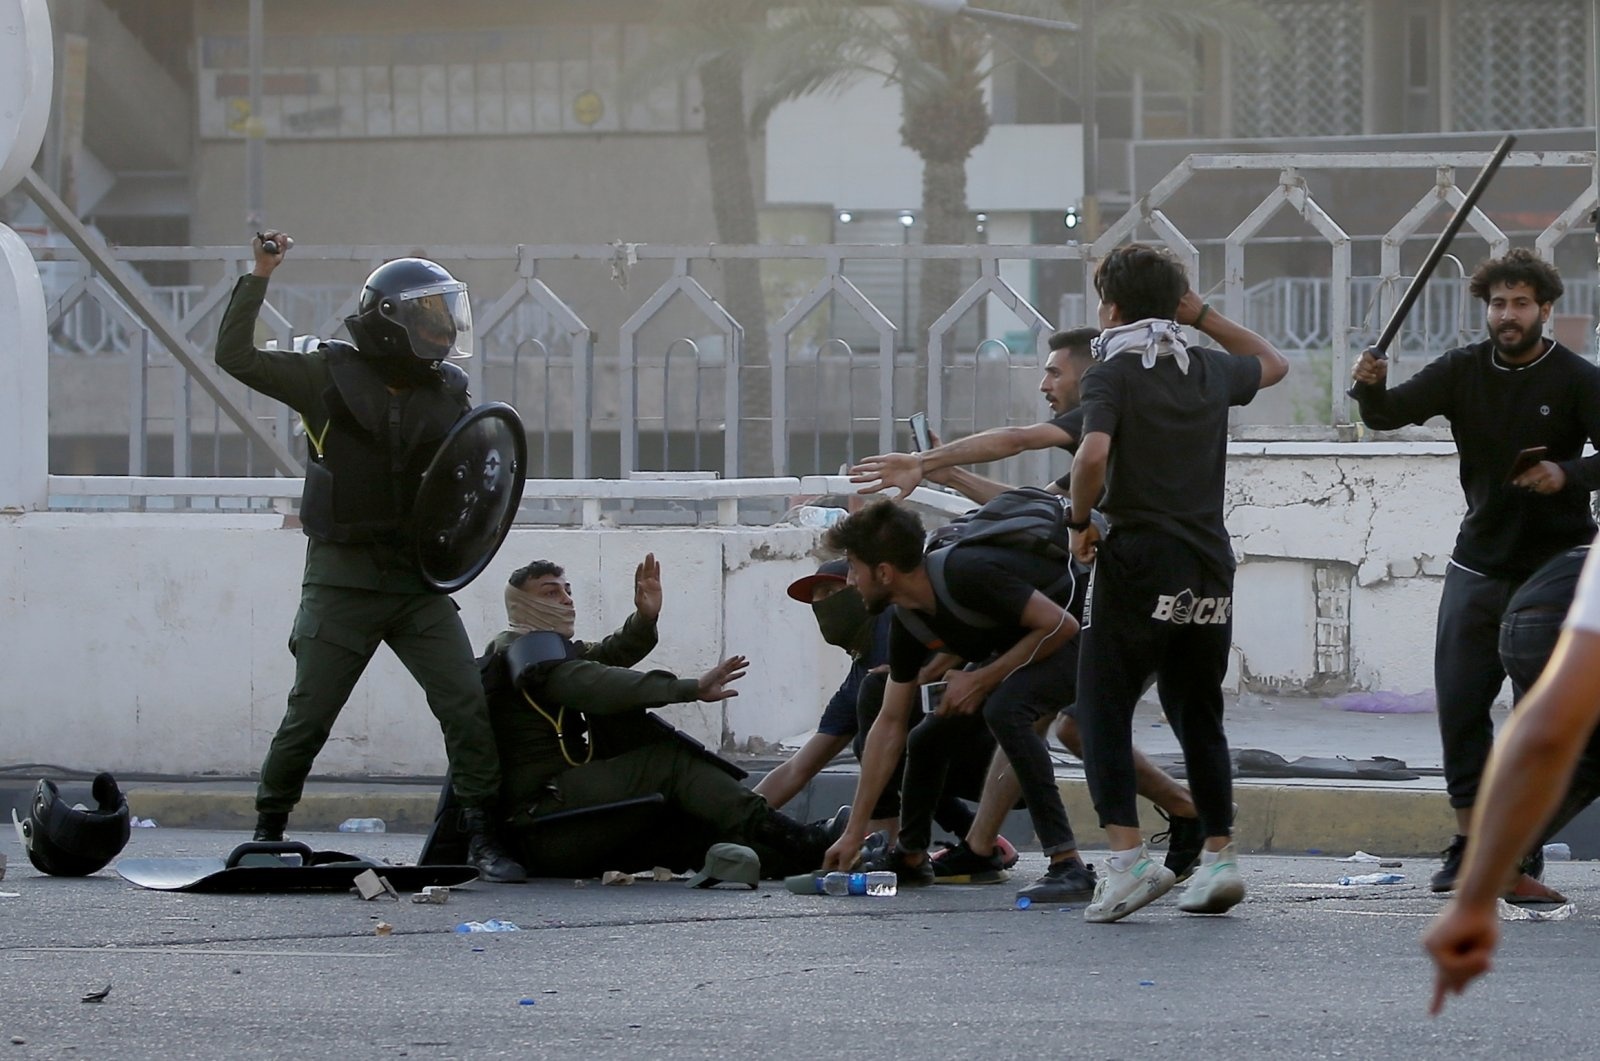 Members of security forces clash with demonstrators during an anti-government protest in Baghdad, Iraq, May 25, 2021. (Reuters Photo)